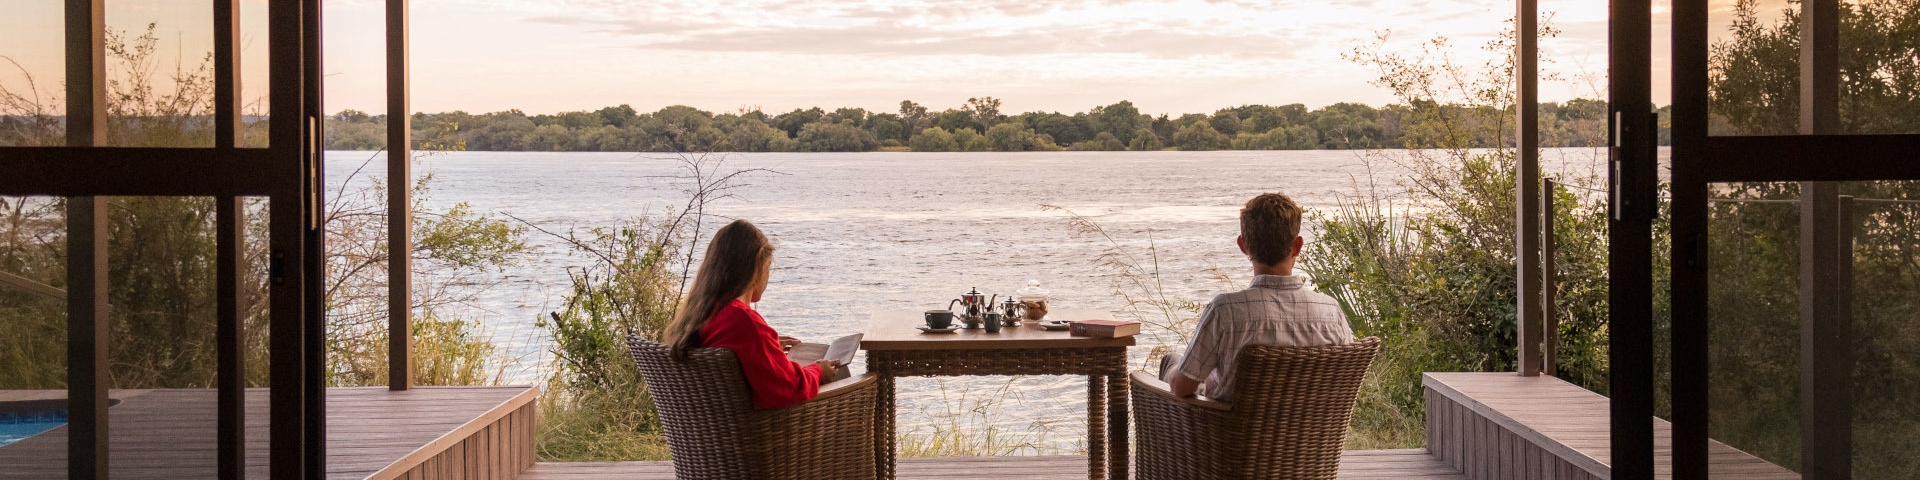 Accommodation in Victoria Falls - Zimbabwe